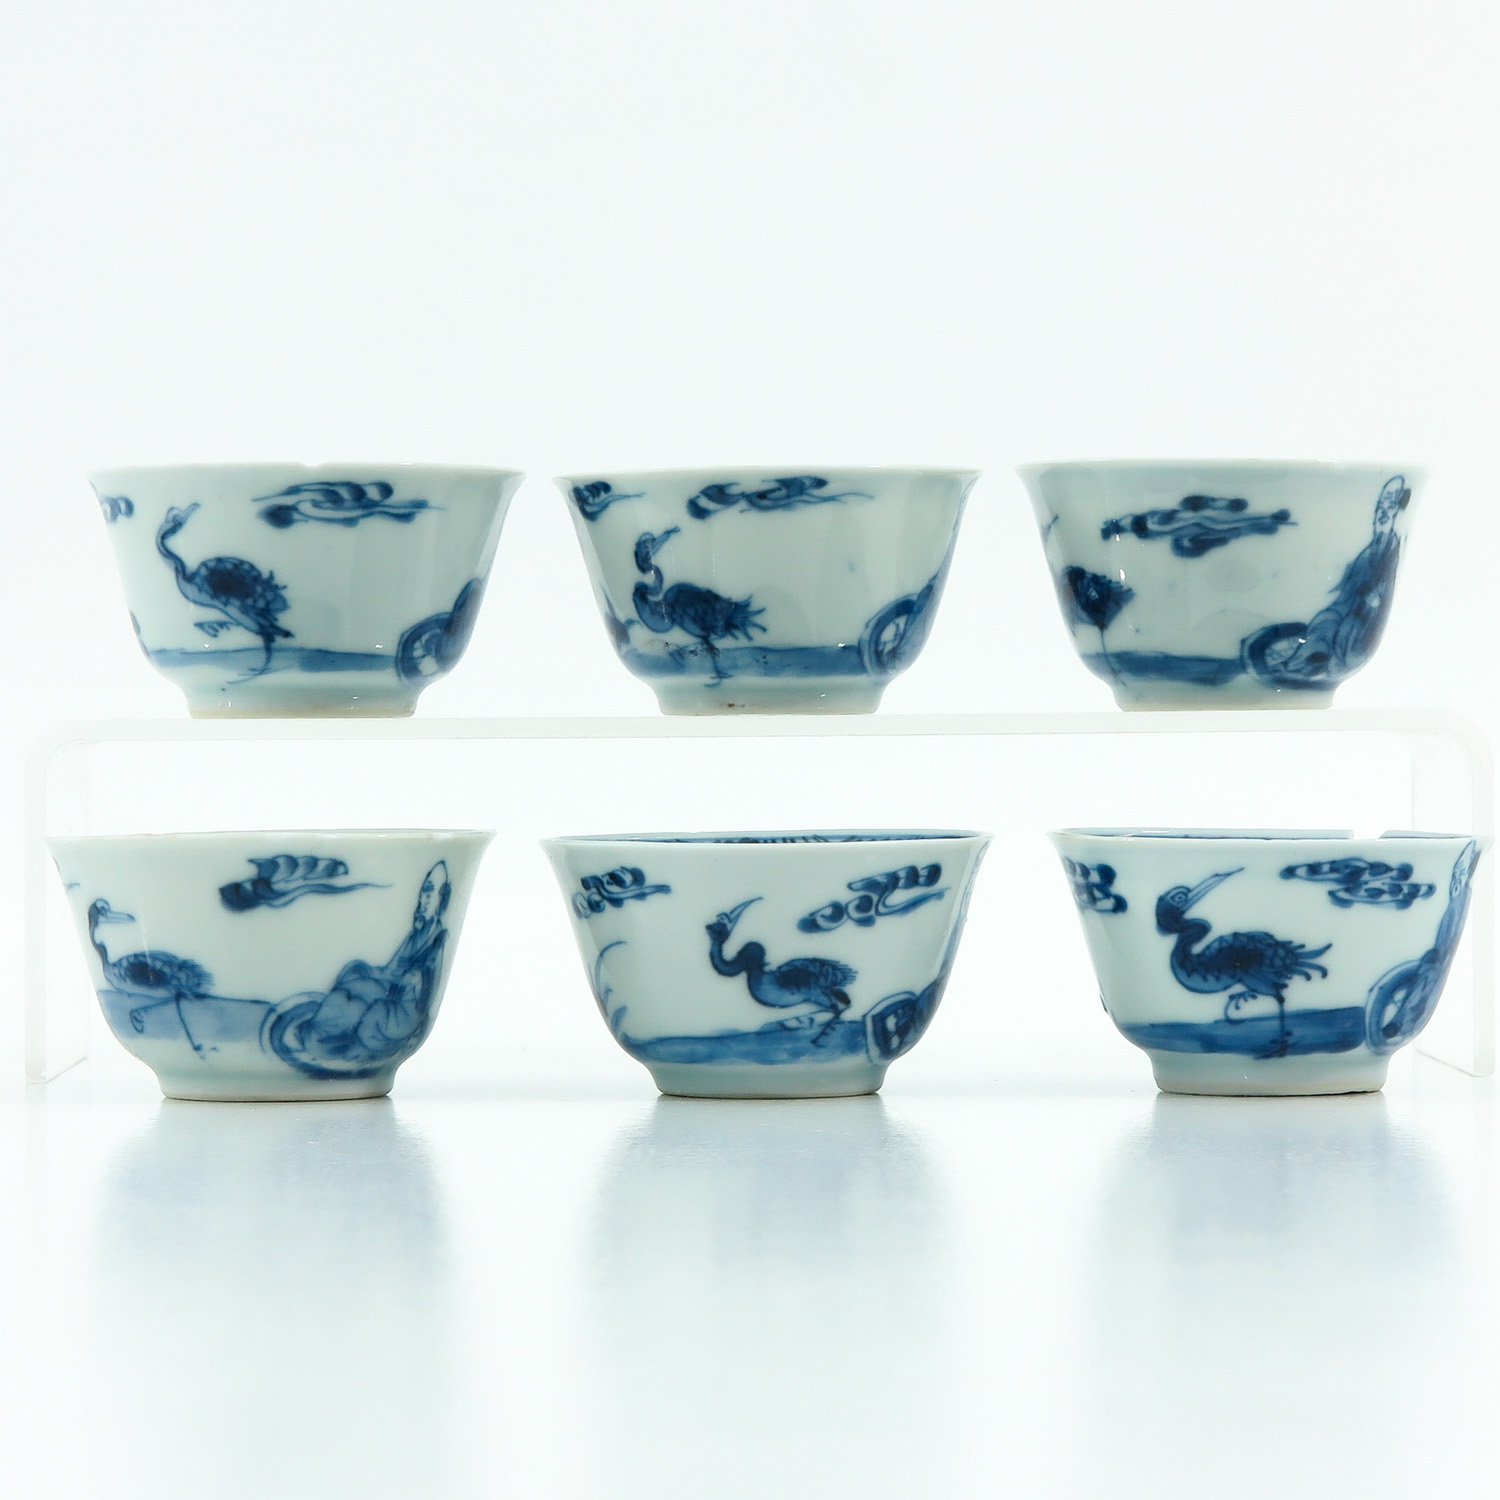 A Series of 6 Blue and White Cups - Image 4 of 9